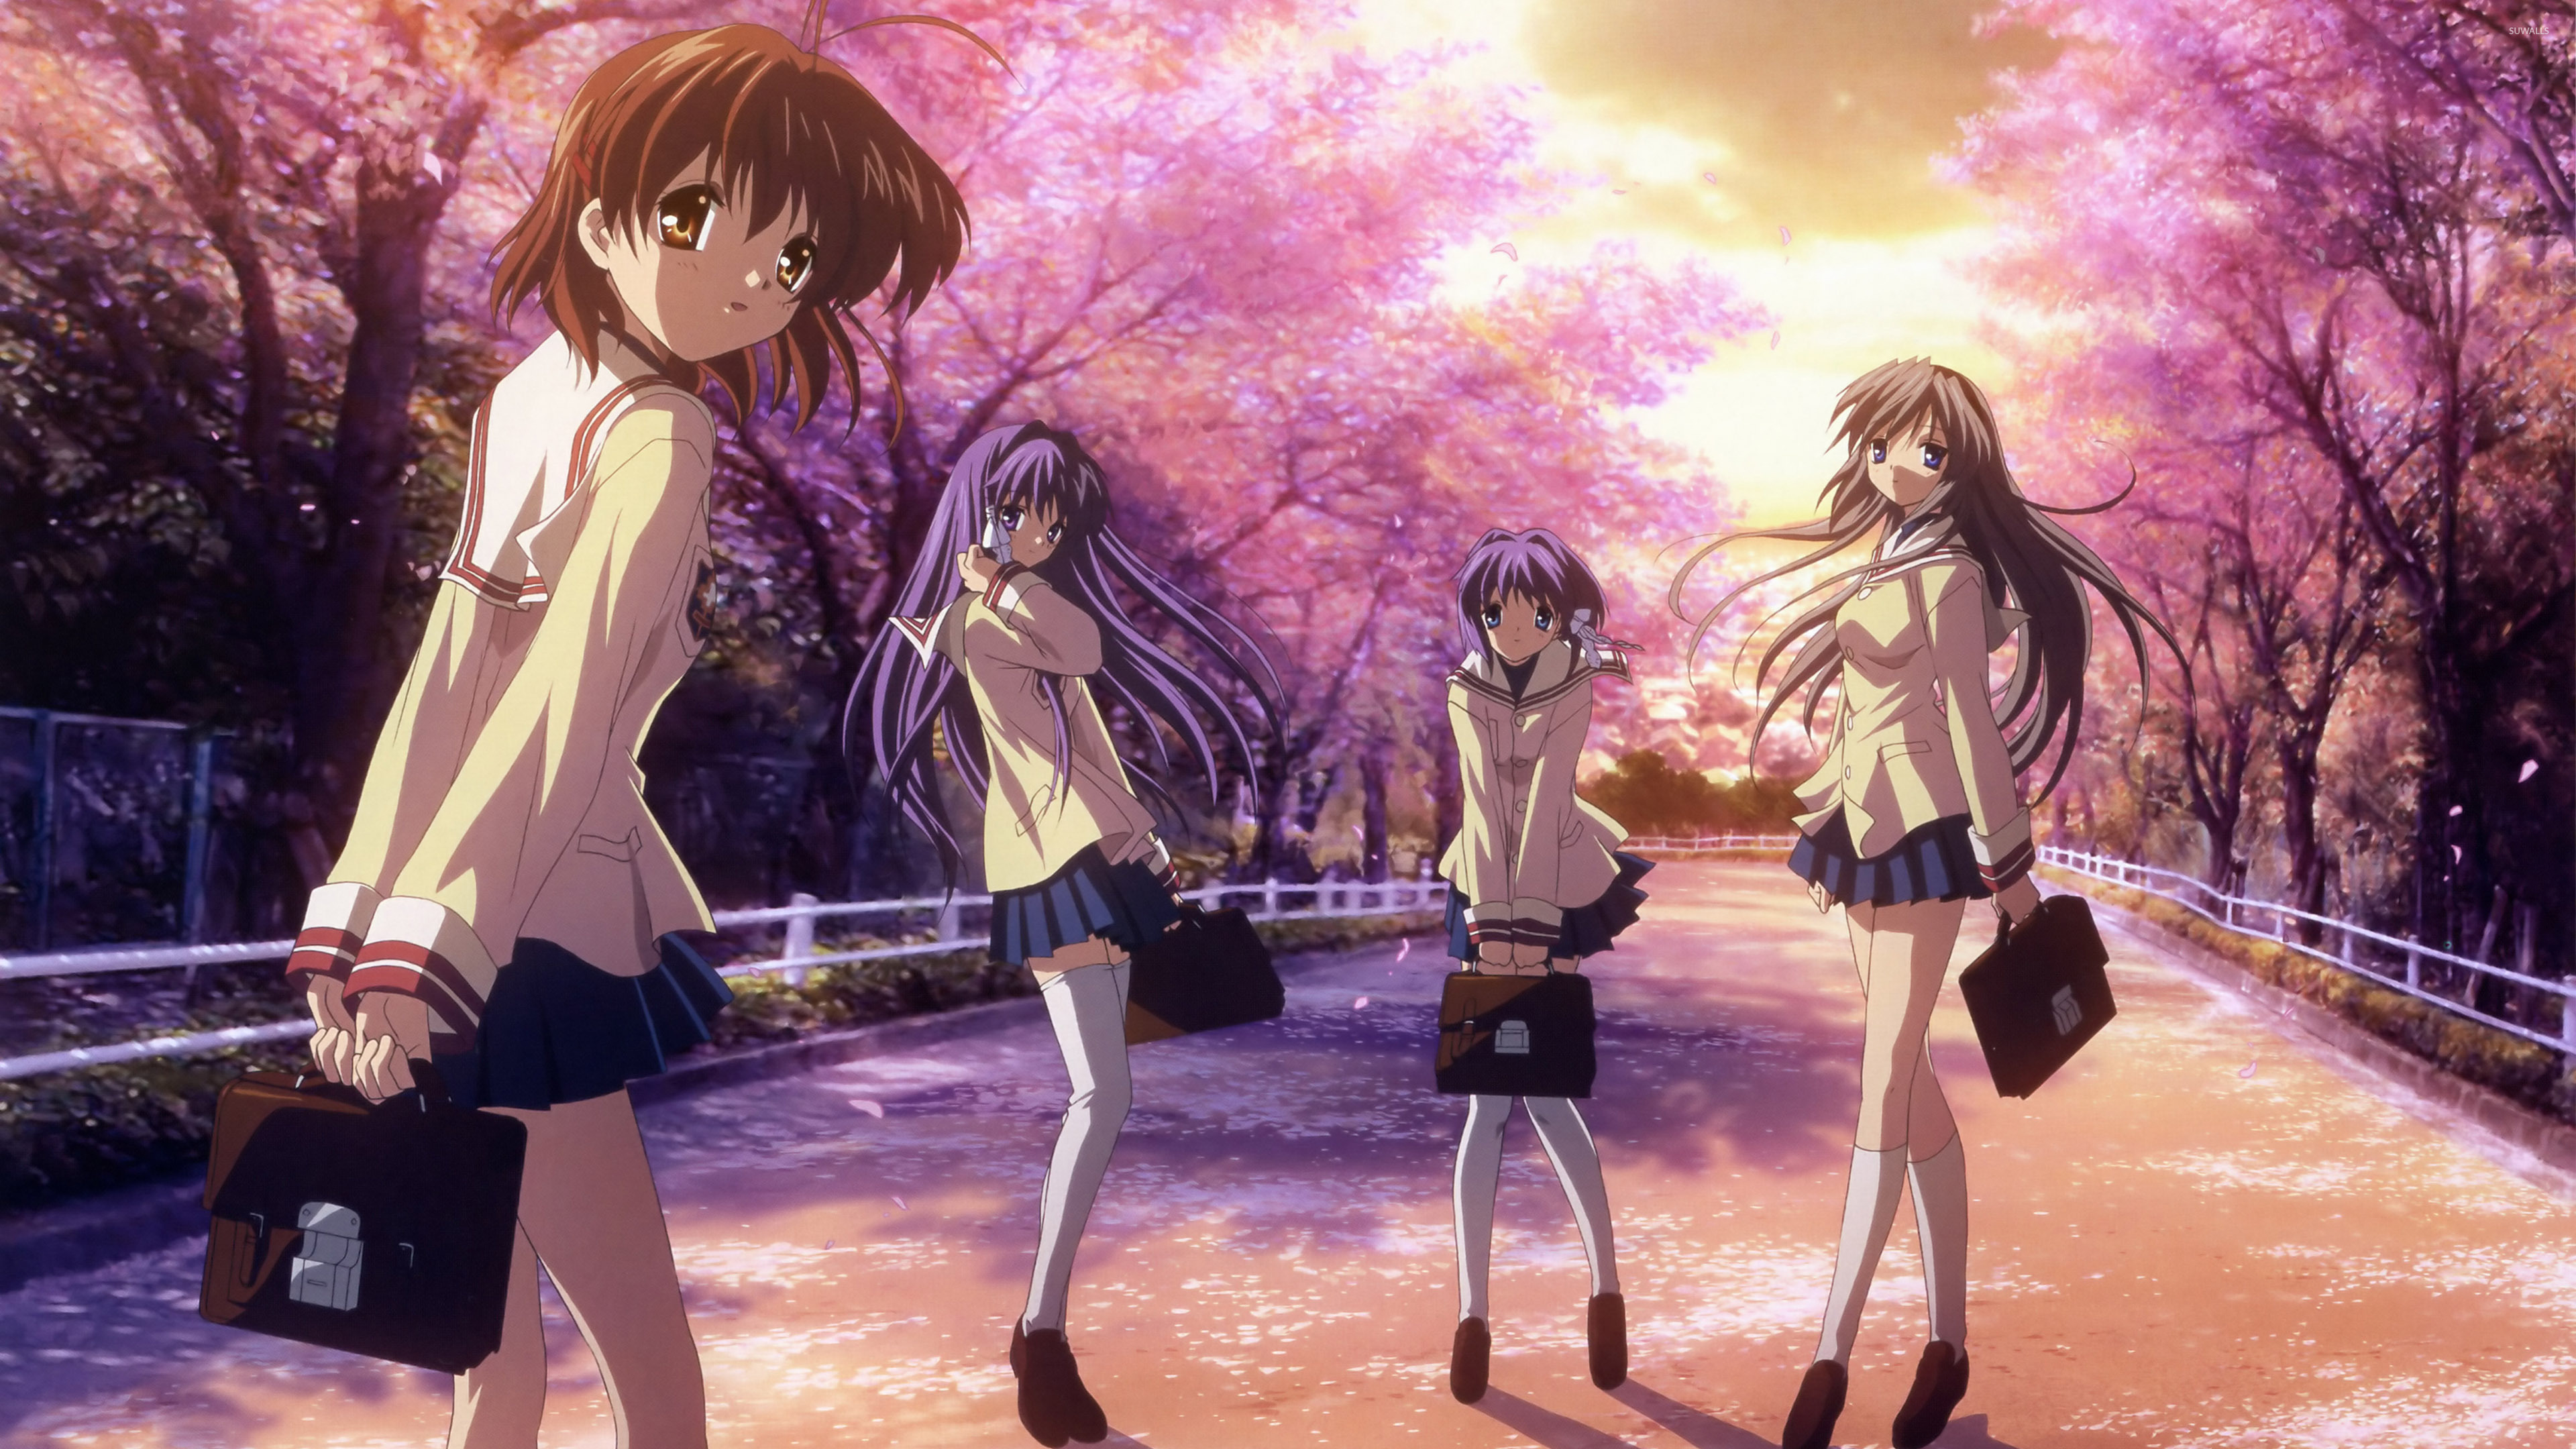 Free Download Pics Photos Anime Clannad Wallpaper 3840x2160 For